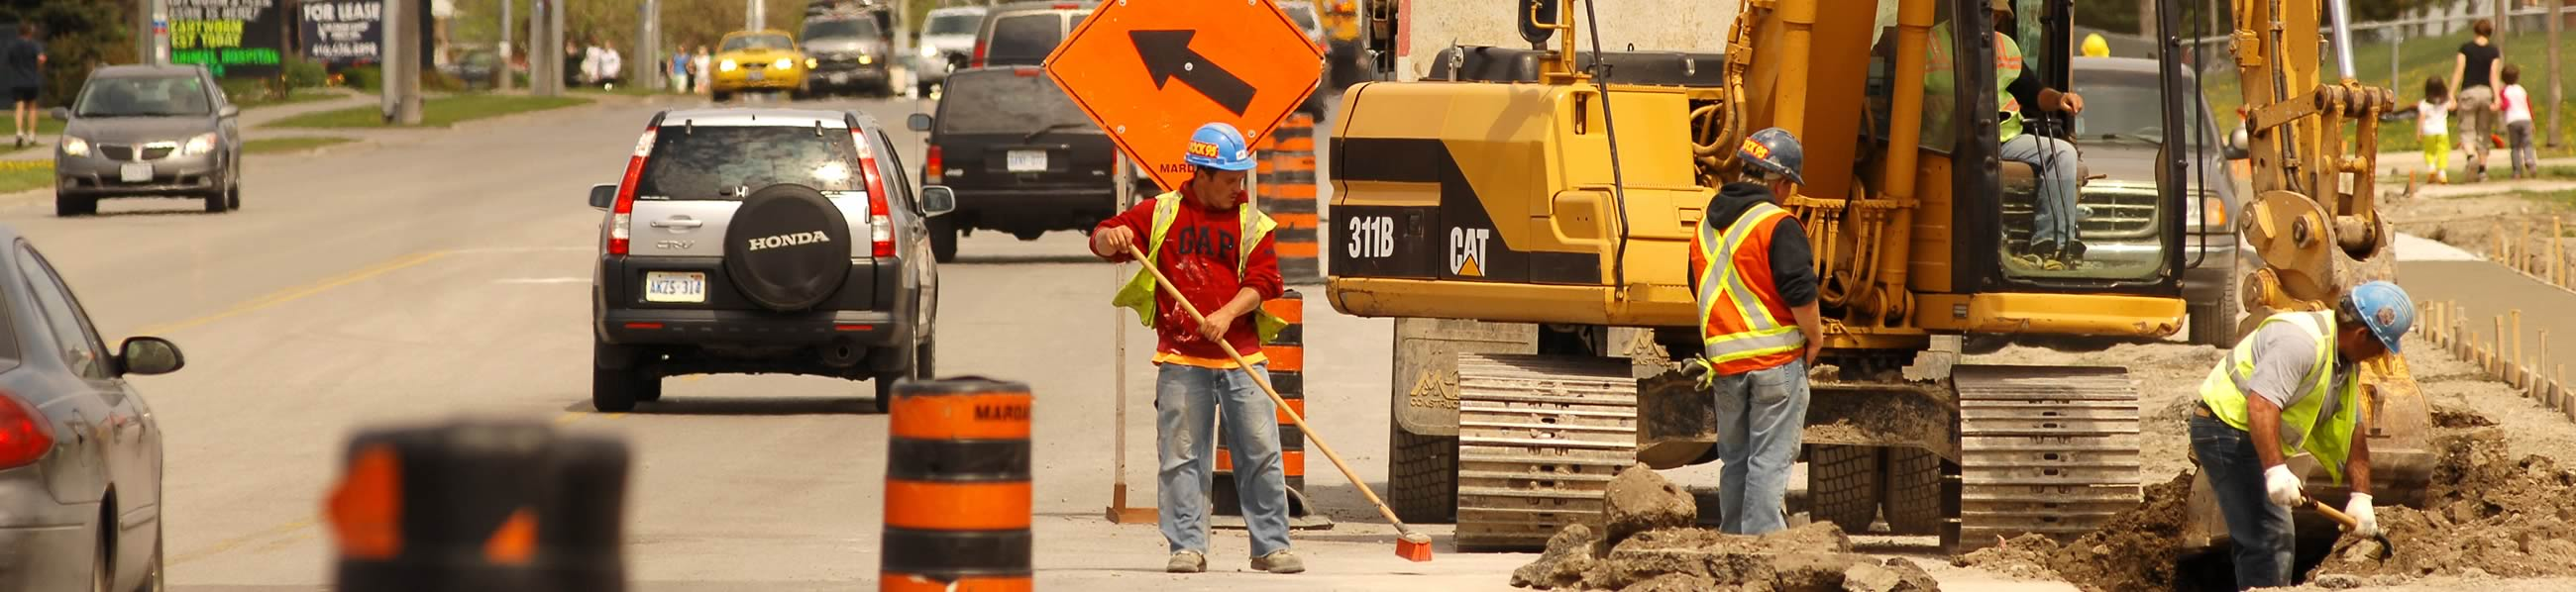 Construction workers digging a hole on a street in Barrie